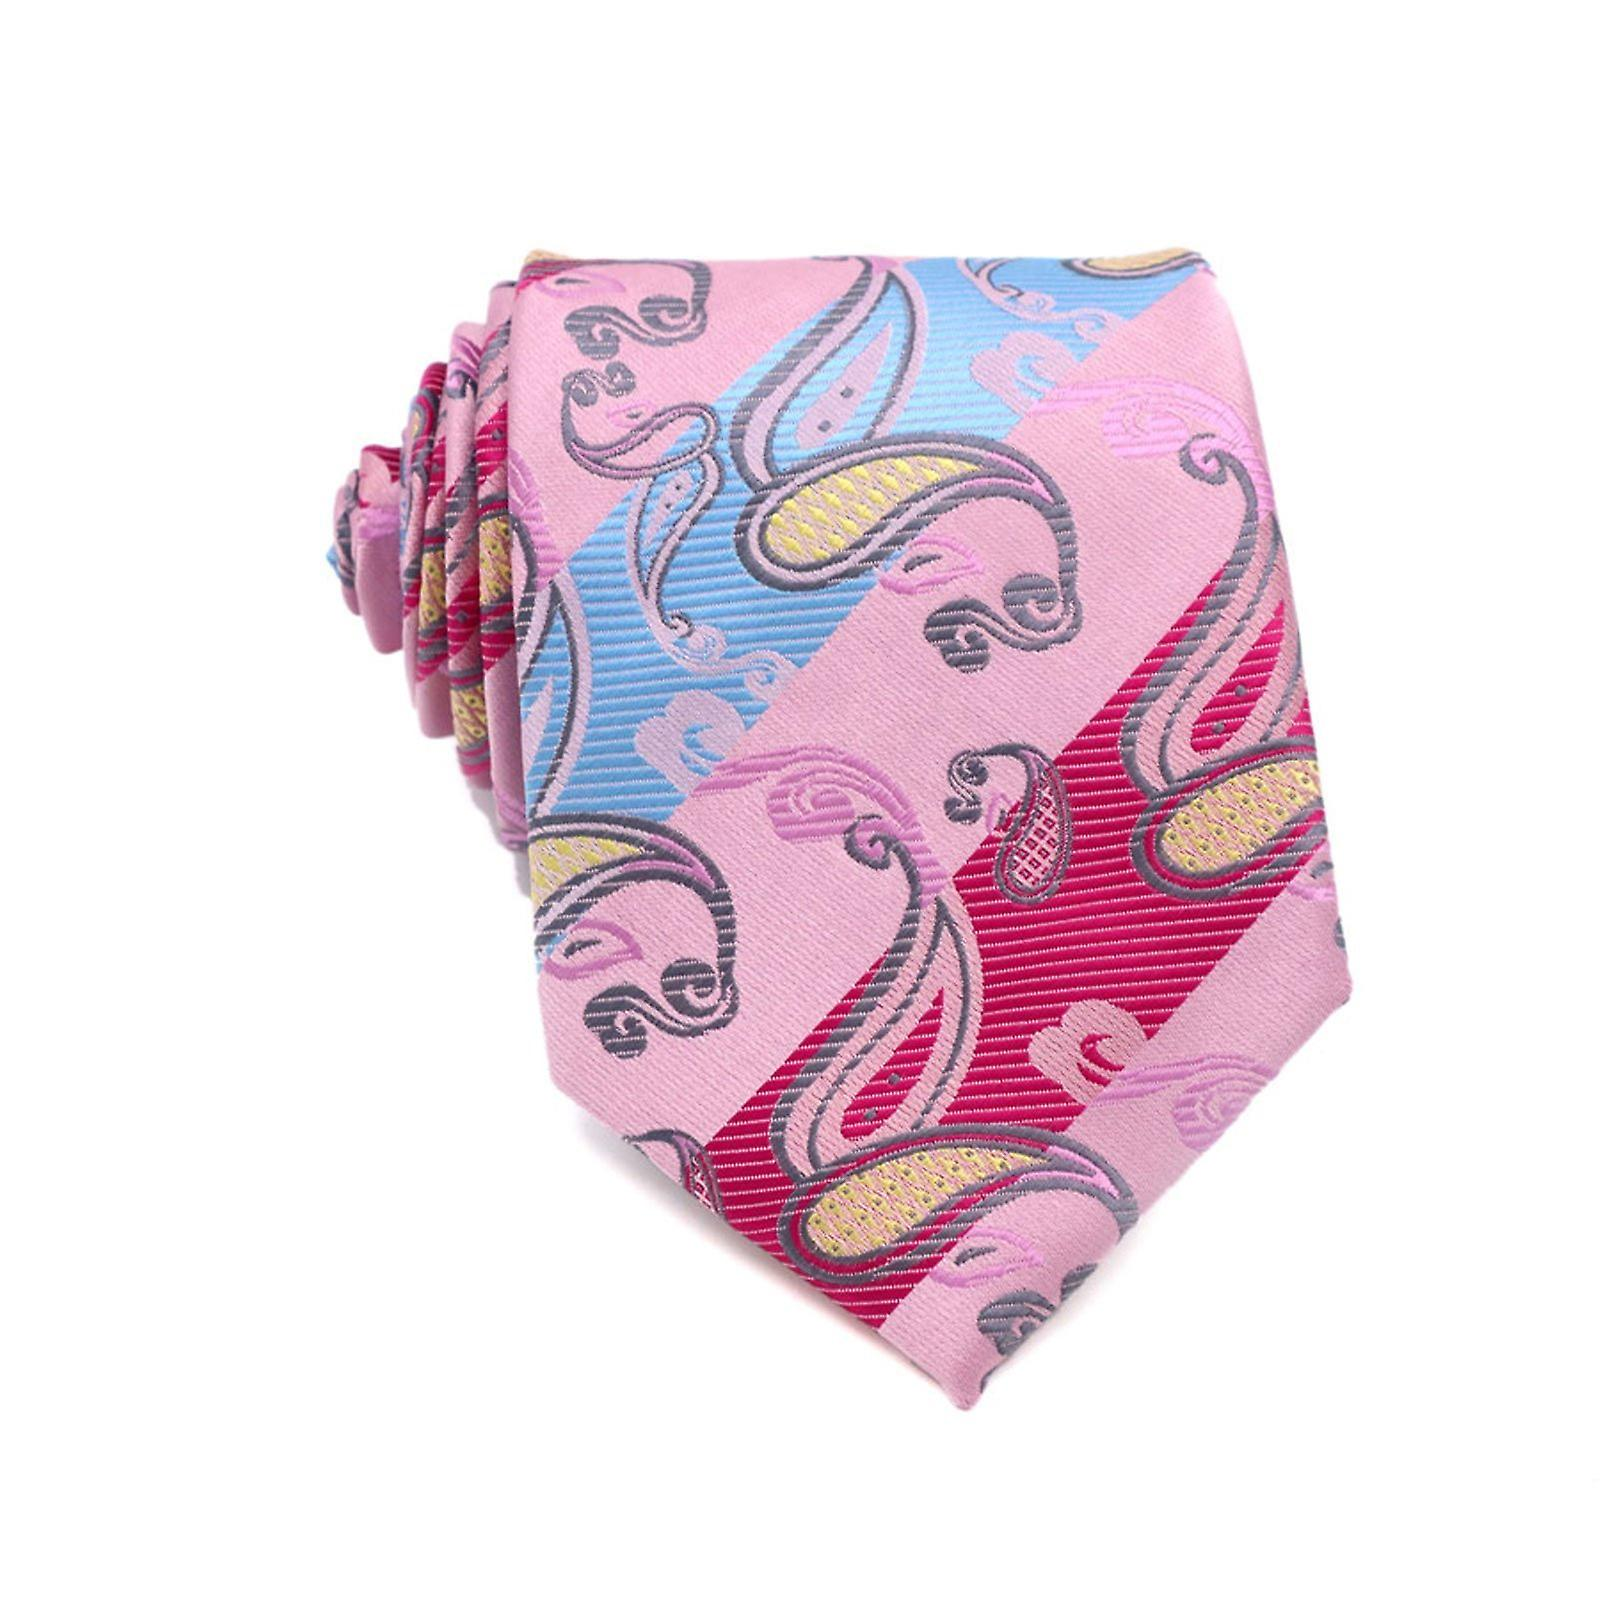 Bright pink oat & baby blue paisley pocket square & tie